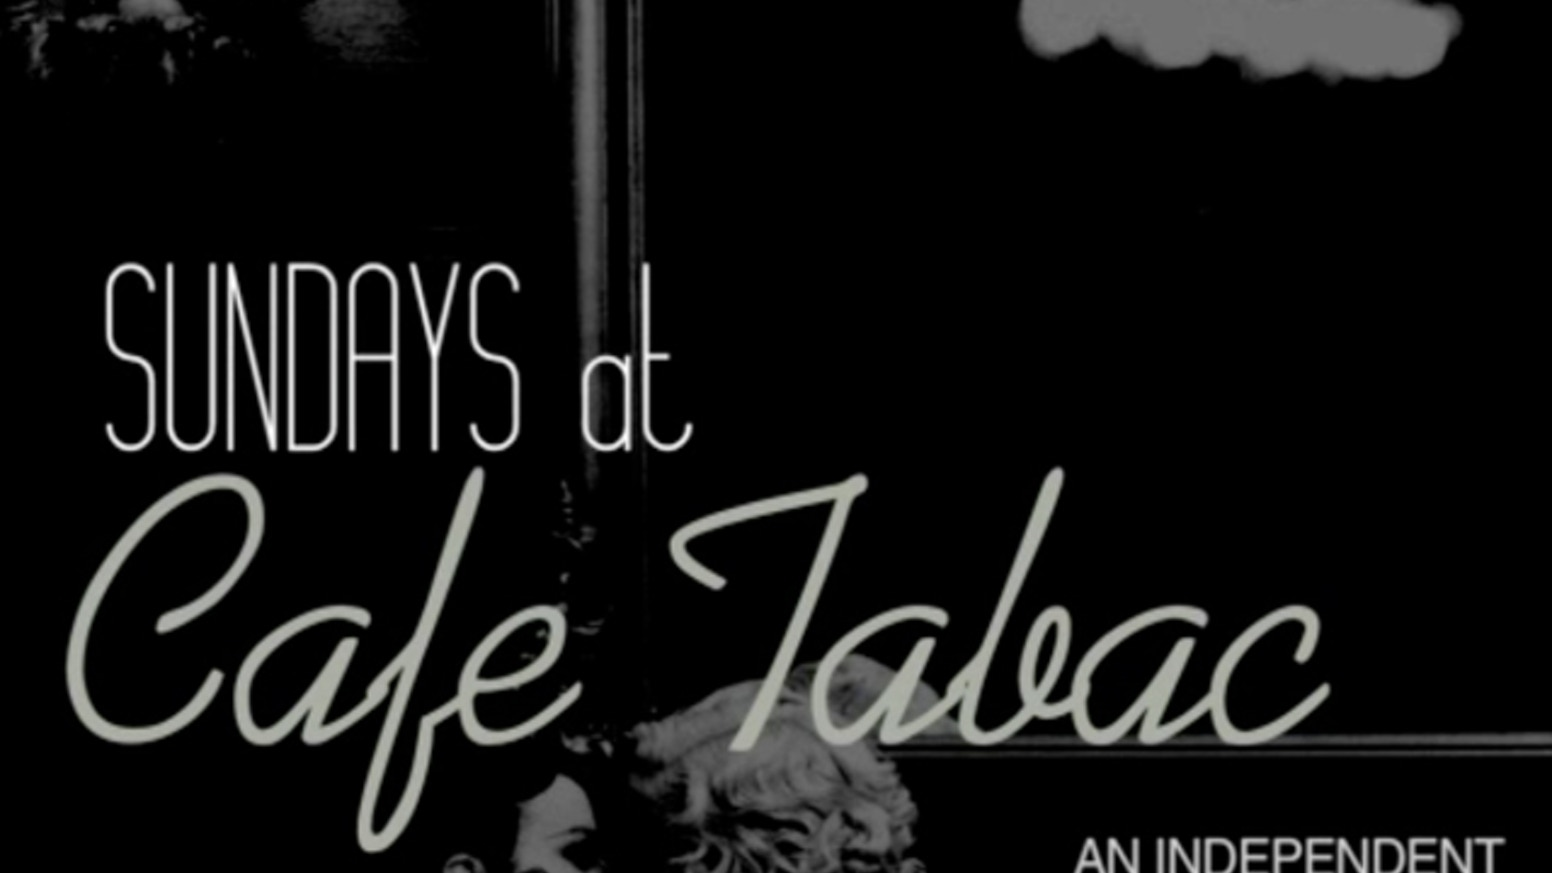 SUNDAYS AT CAFE TABAC is a film about an iconic weekly salon for women in NY's East Village in the early 90's.